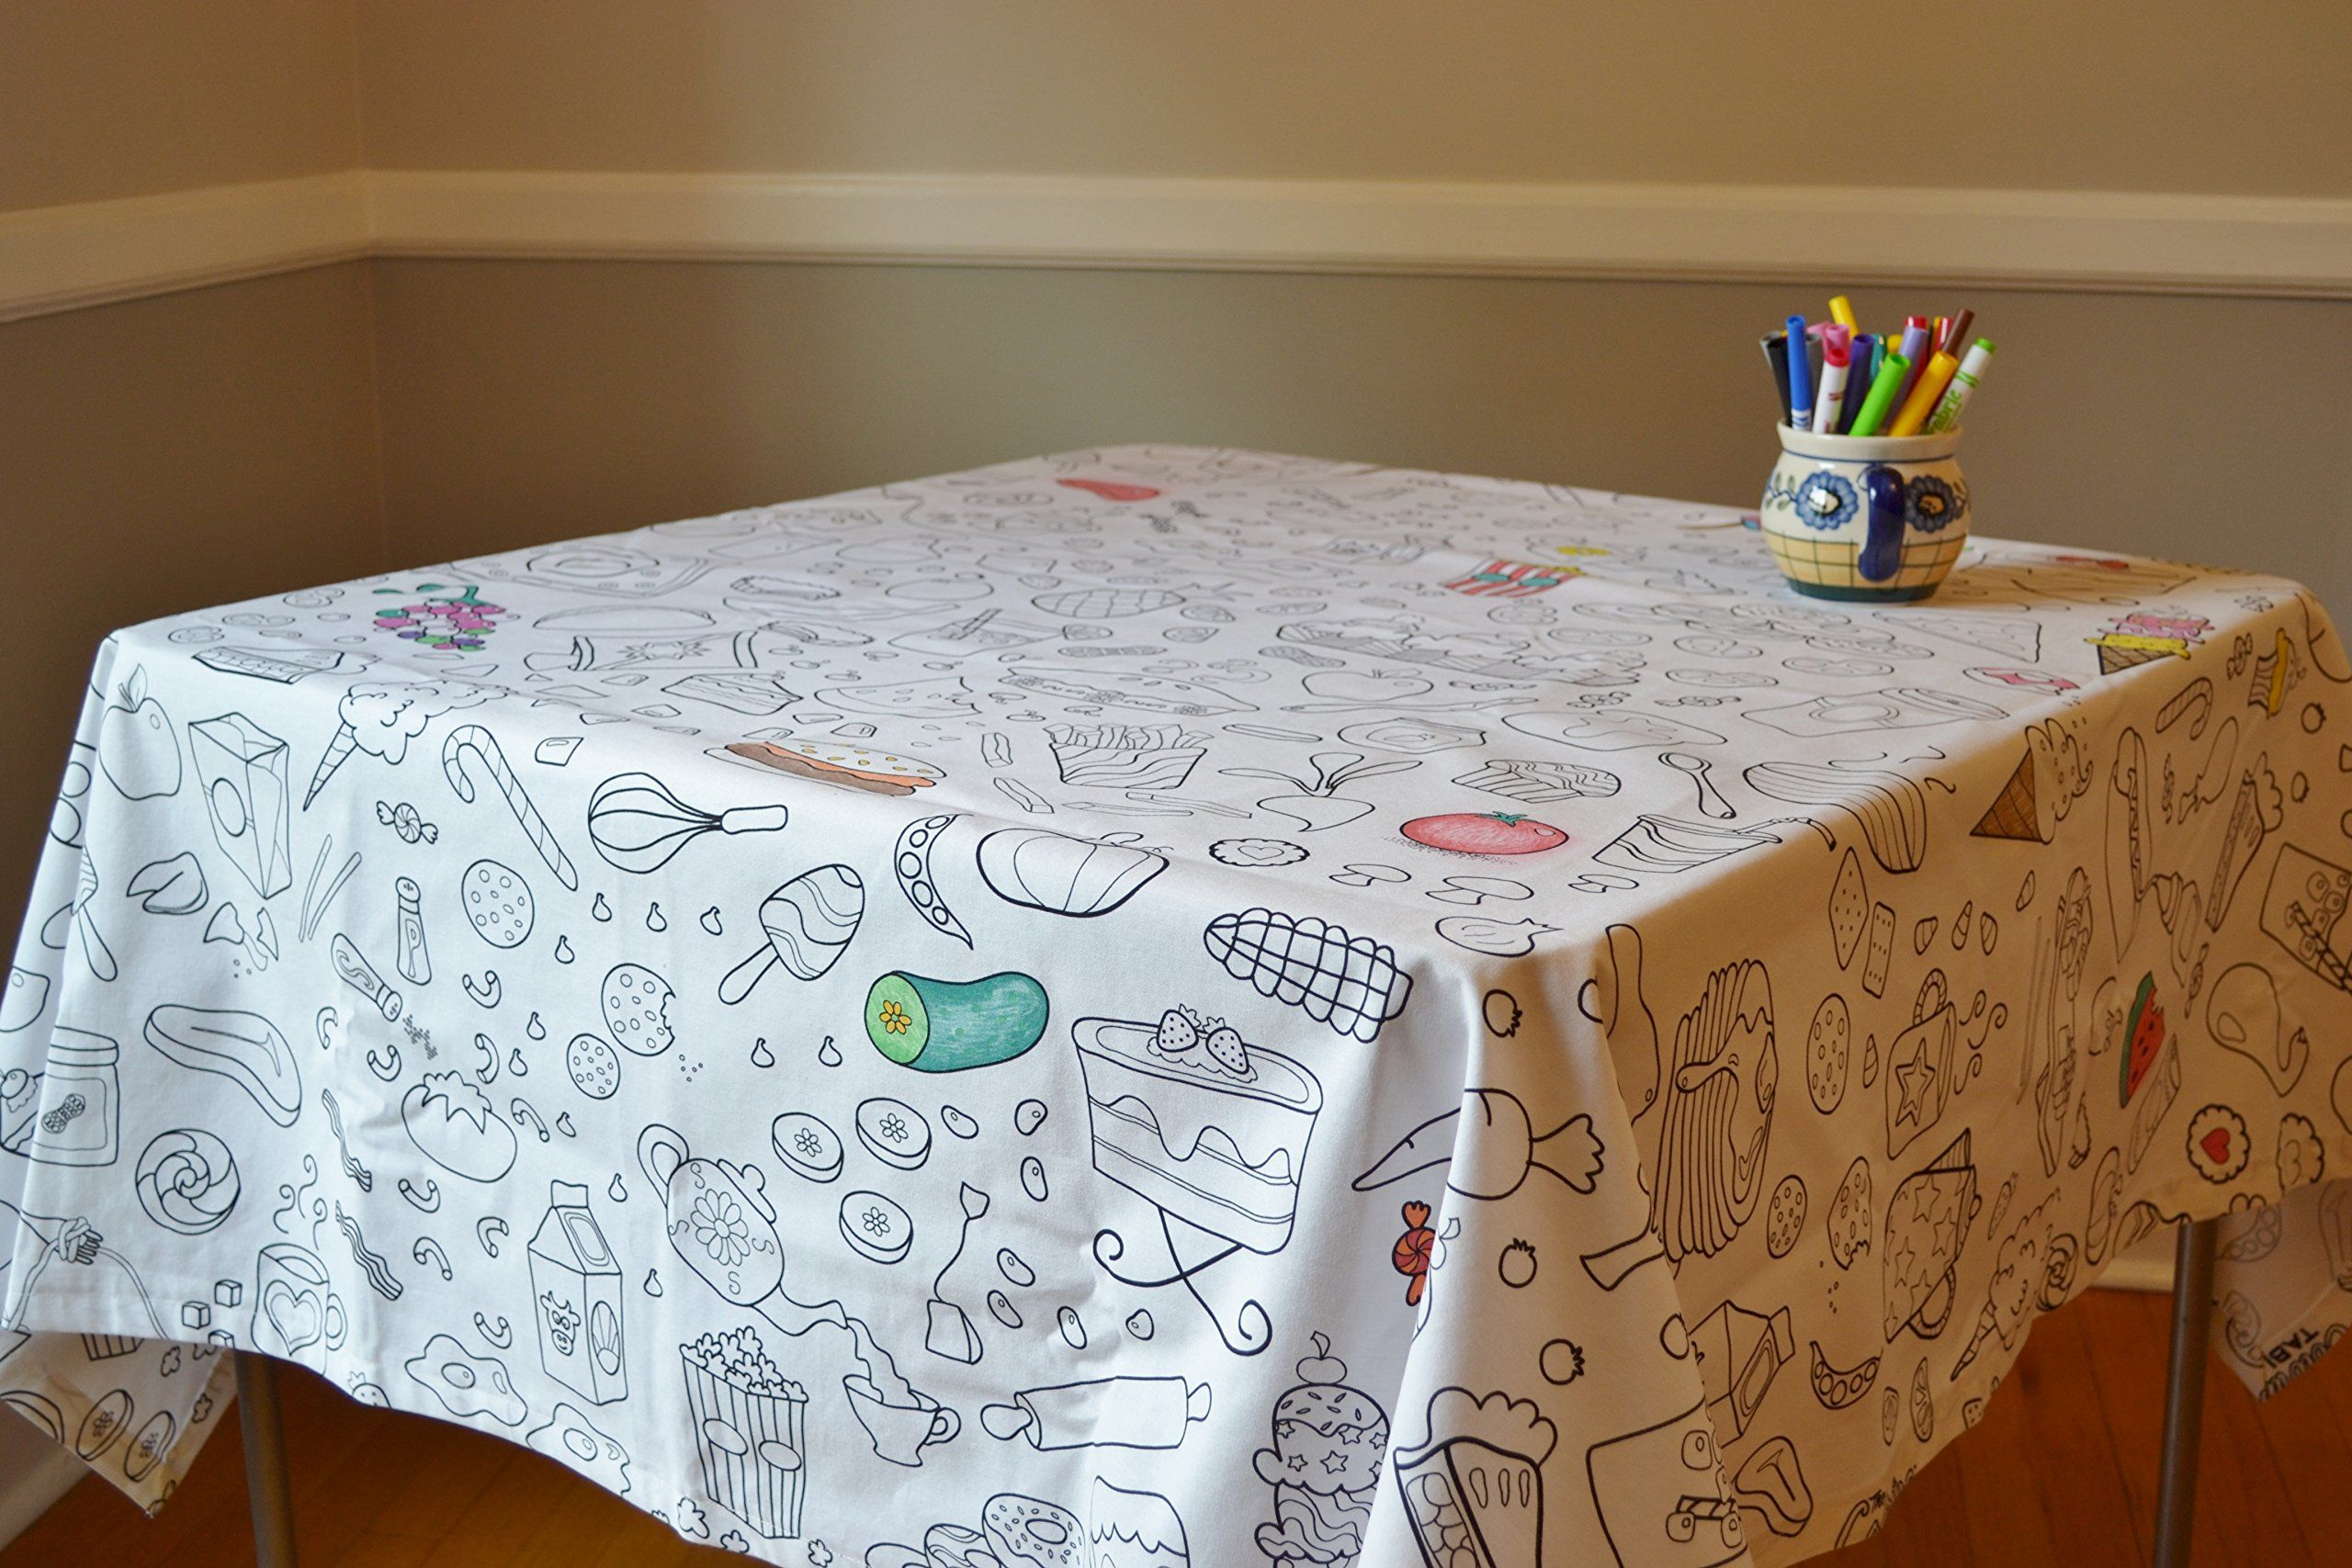 Download The Coloring Table - Food Fun Tablecloth   Table cloth, Tablecloth fabric, Washable crayons